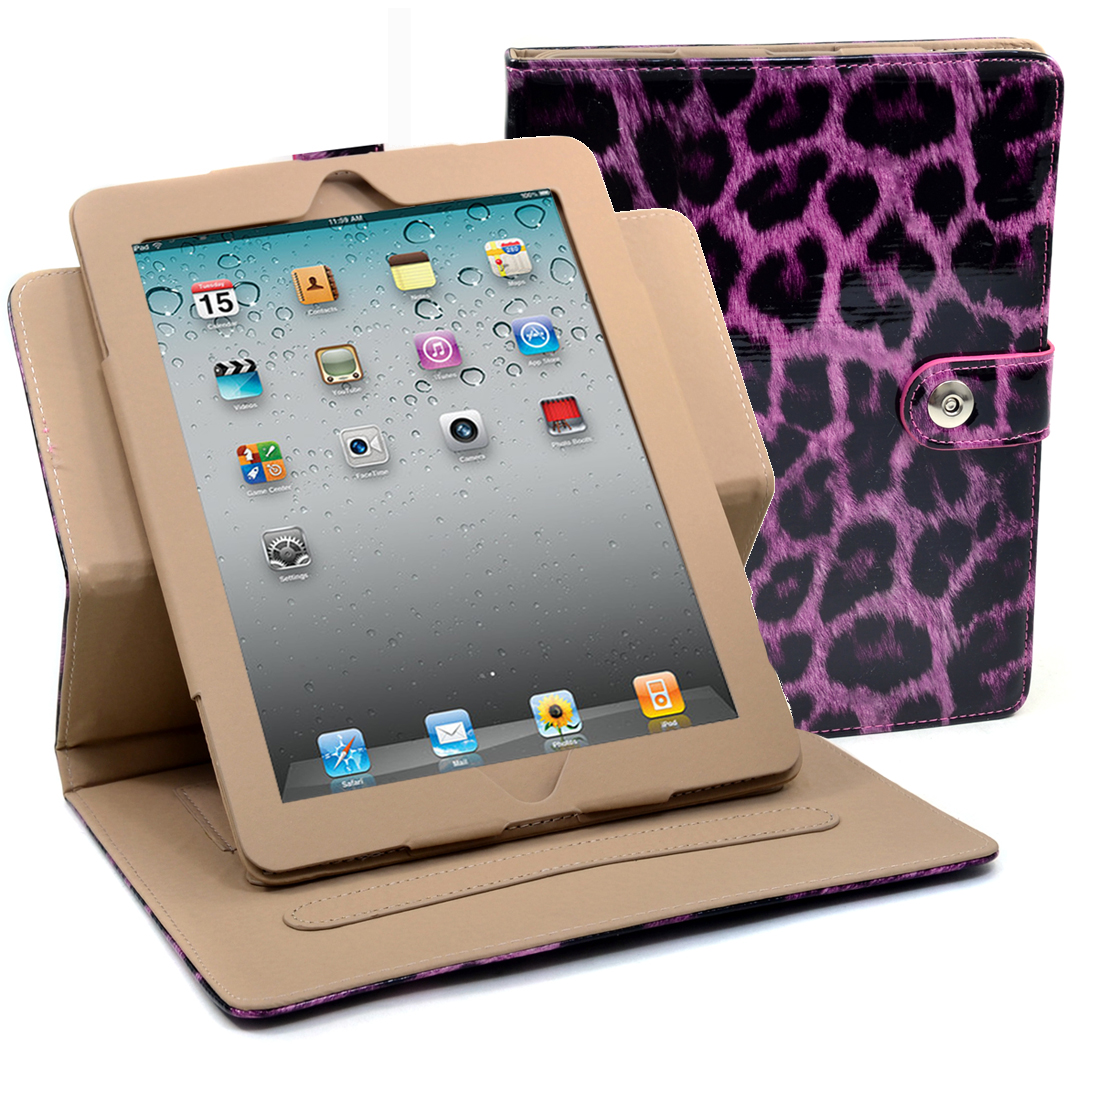 Dasein® Patent Leopard Print iPad Case New Smart Stand Cover for iPad 2 3 4